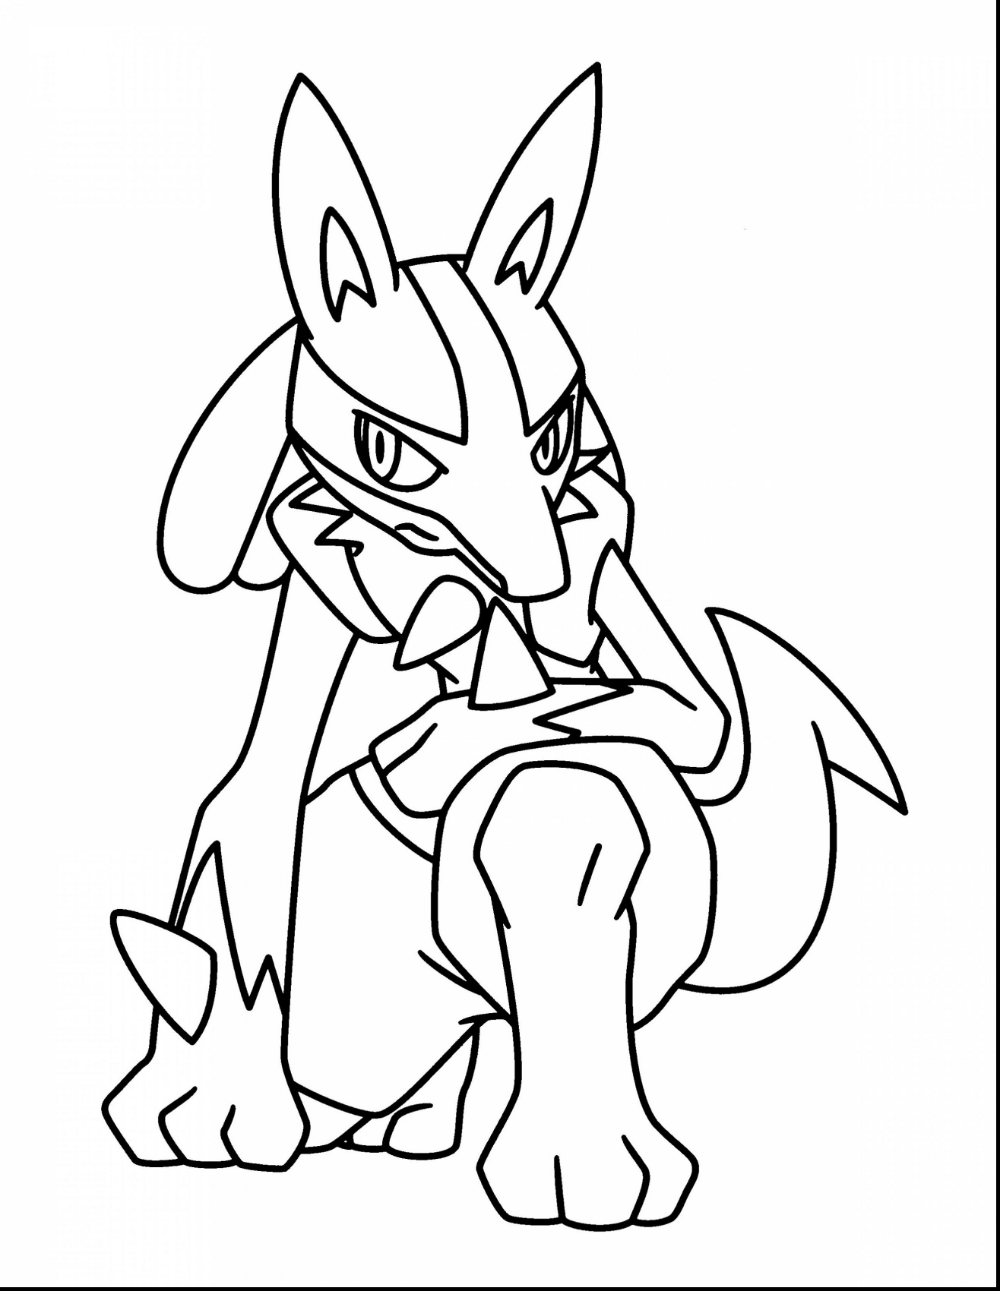 Lucario Coloring Page Free 101 Worksheets Pokemon Coloring Pages Cartoon Coloring Pages Pokemon Coloring